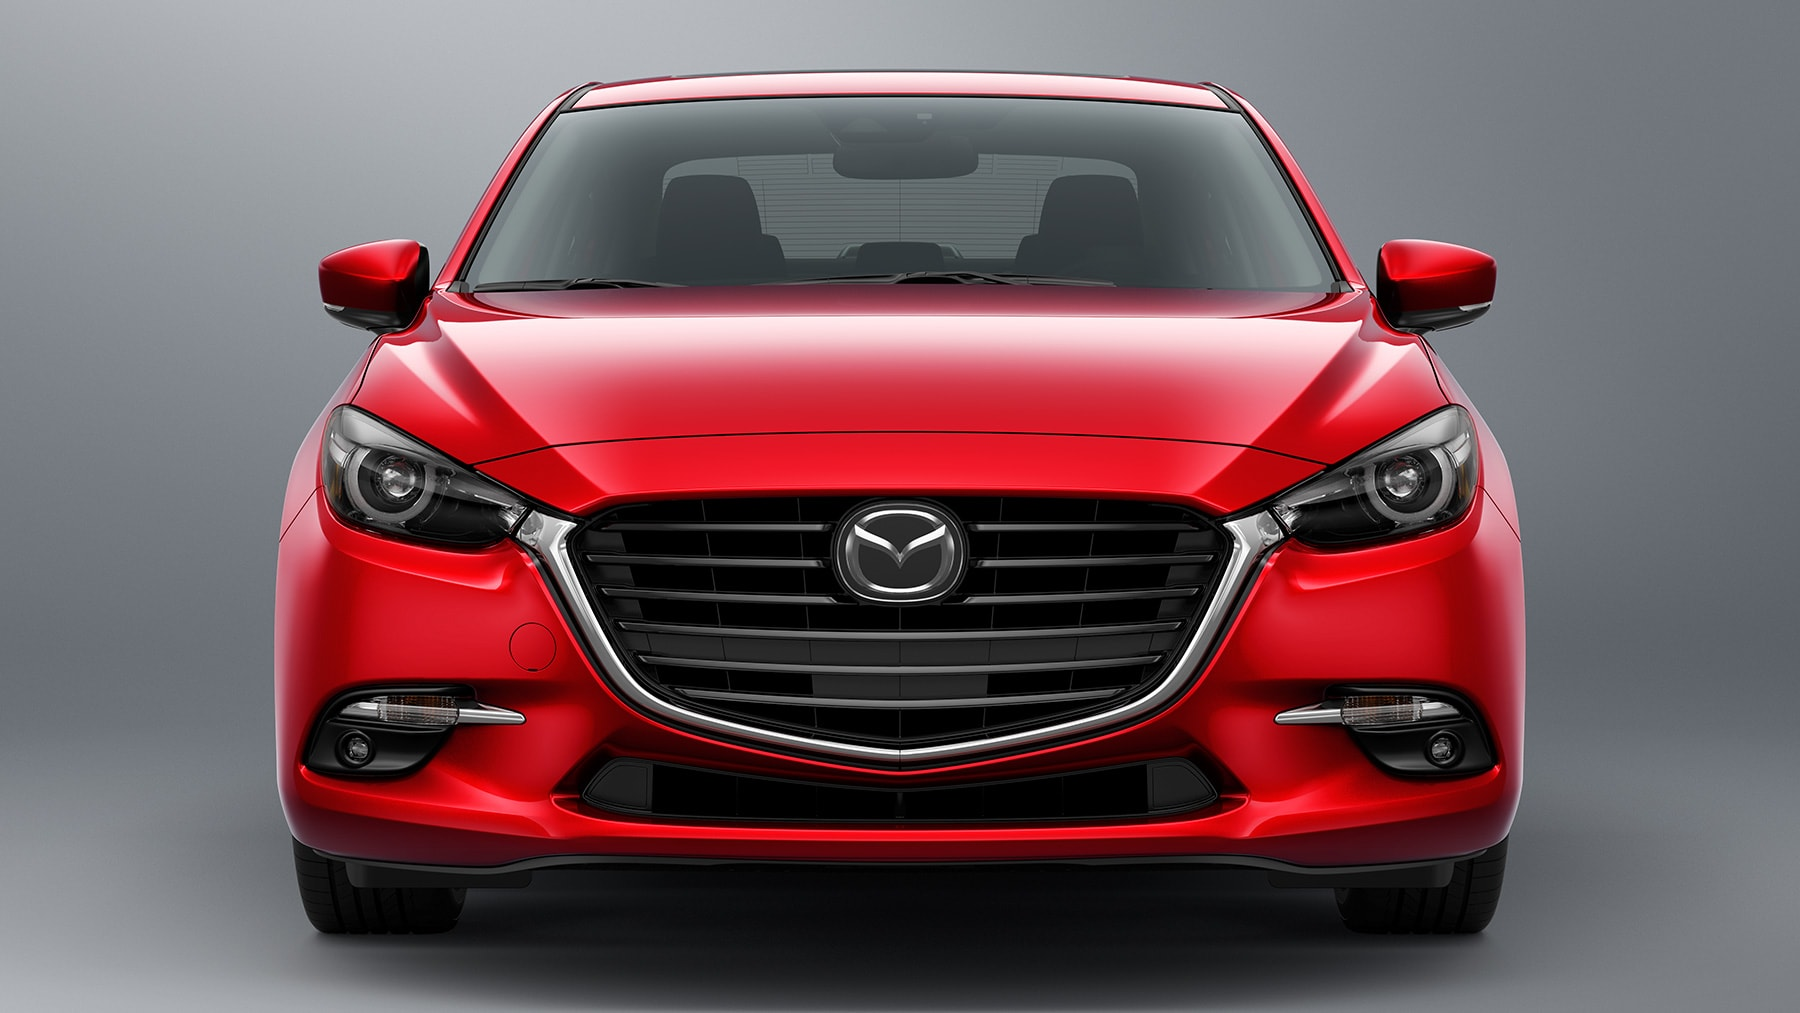 2017 Mazda3 Vs 2017 Ford Focus Near Columbia, SC